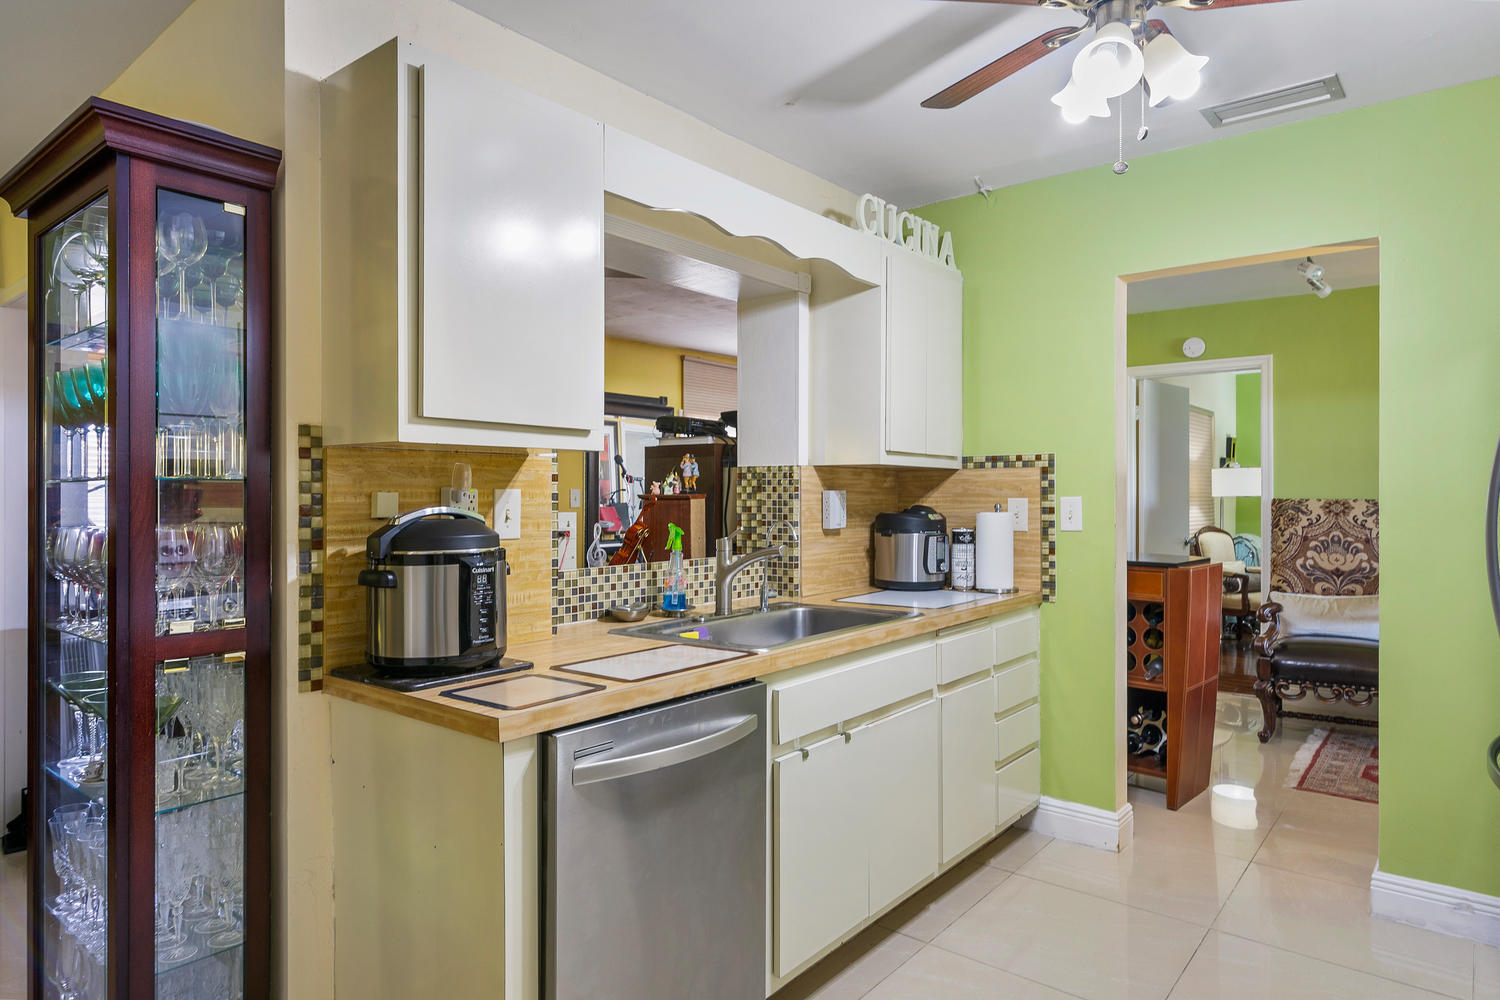 7204 NW 71st St-large-017-017-Kitchen-15